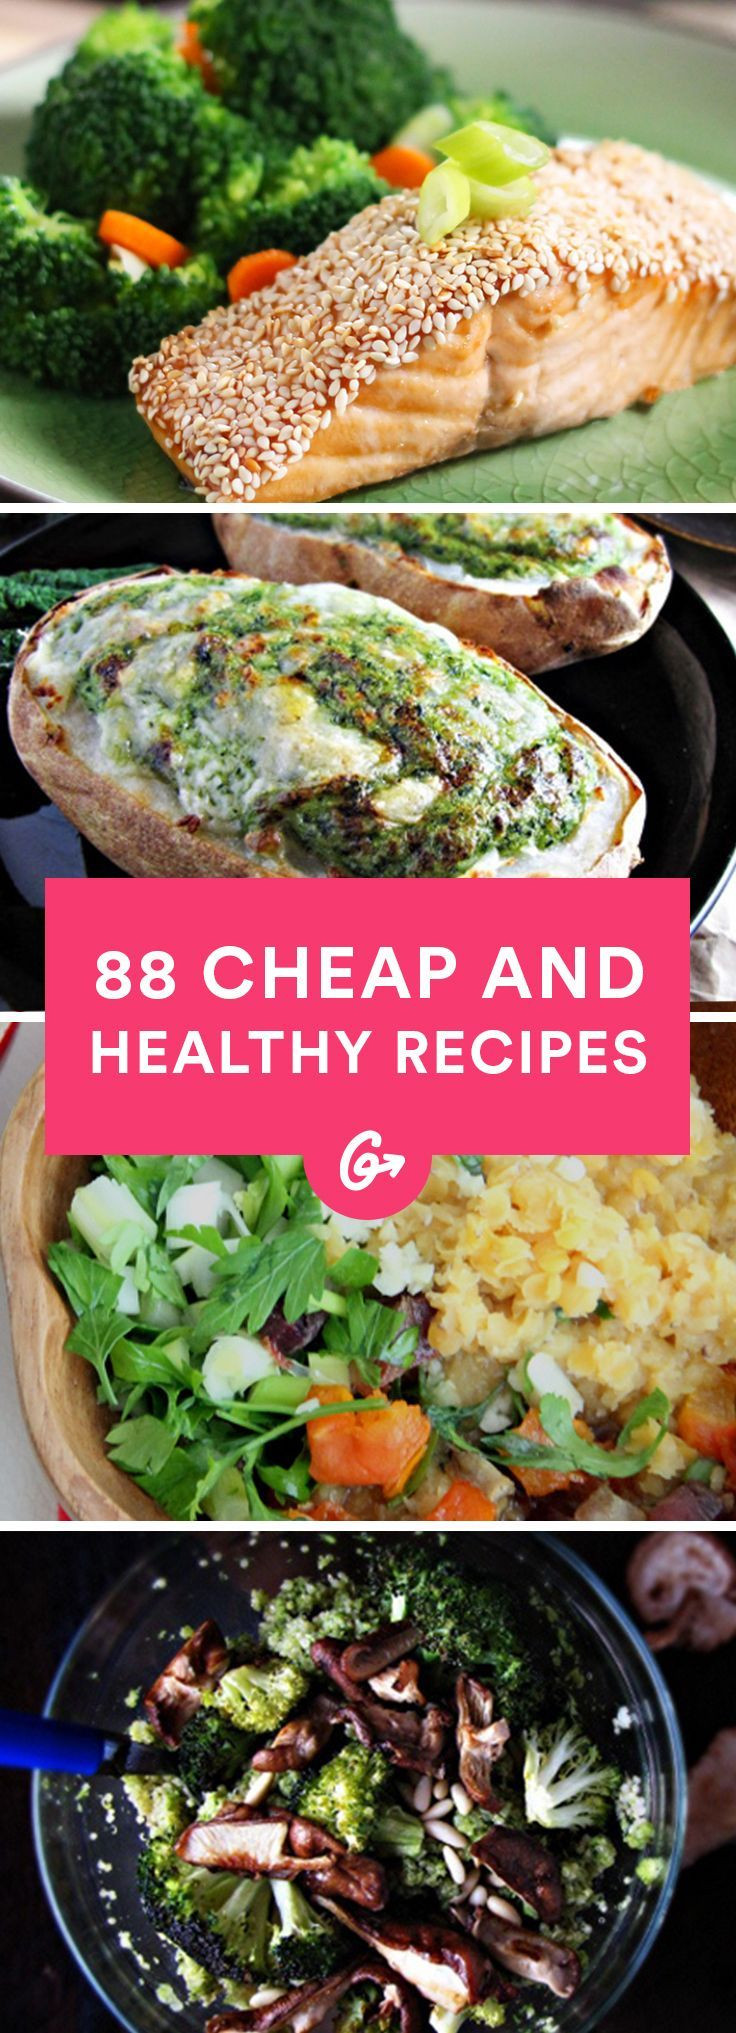 Cheap And Healthy Lunches  88 Cheap and Healthy Lunch and Dinner Recipes